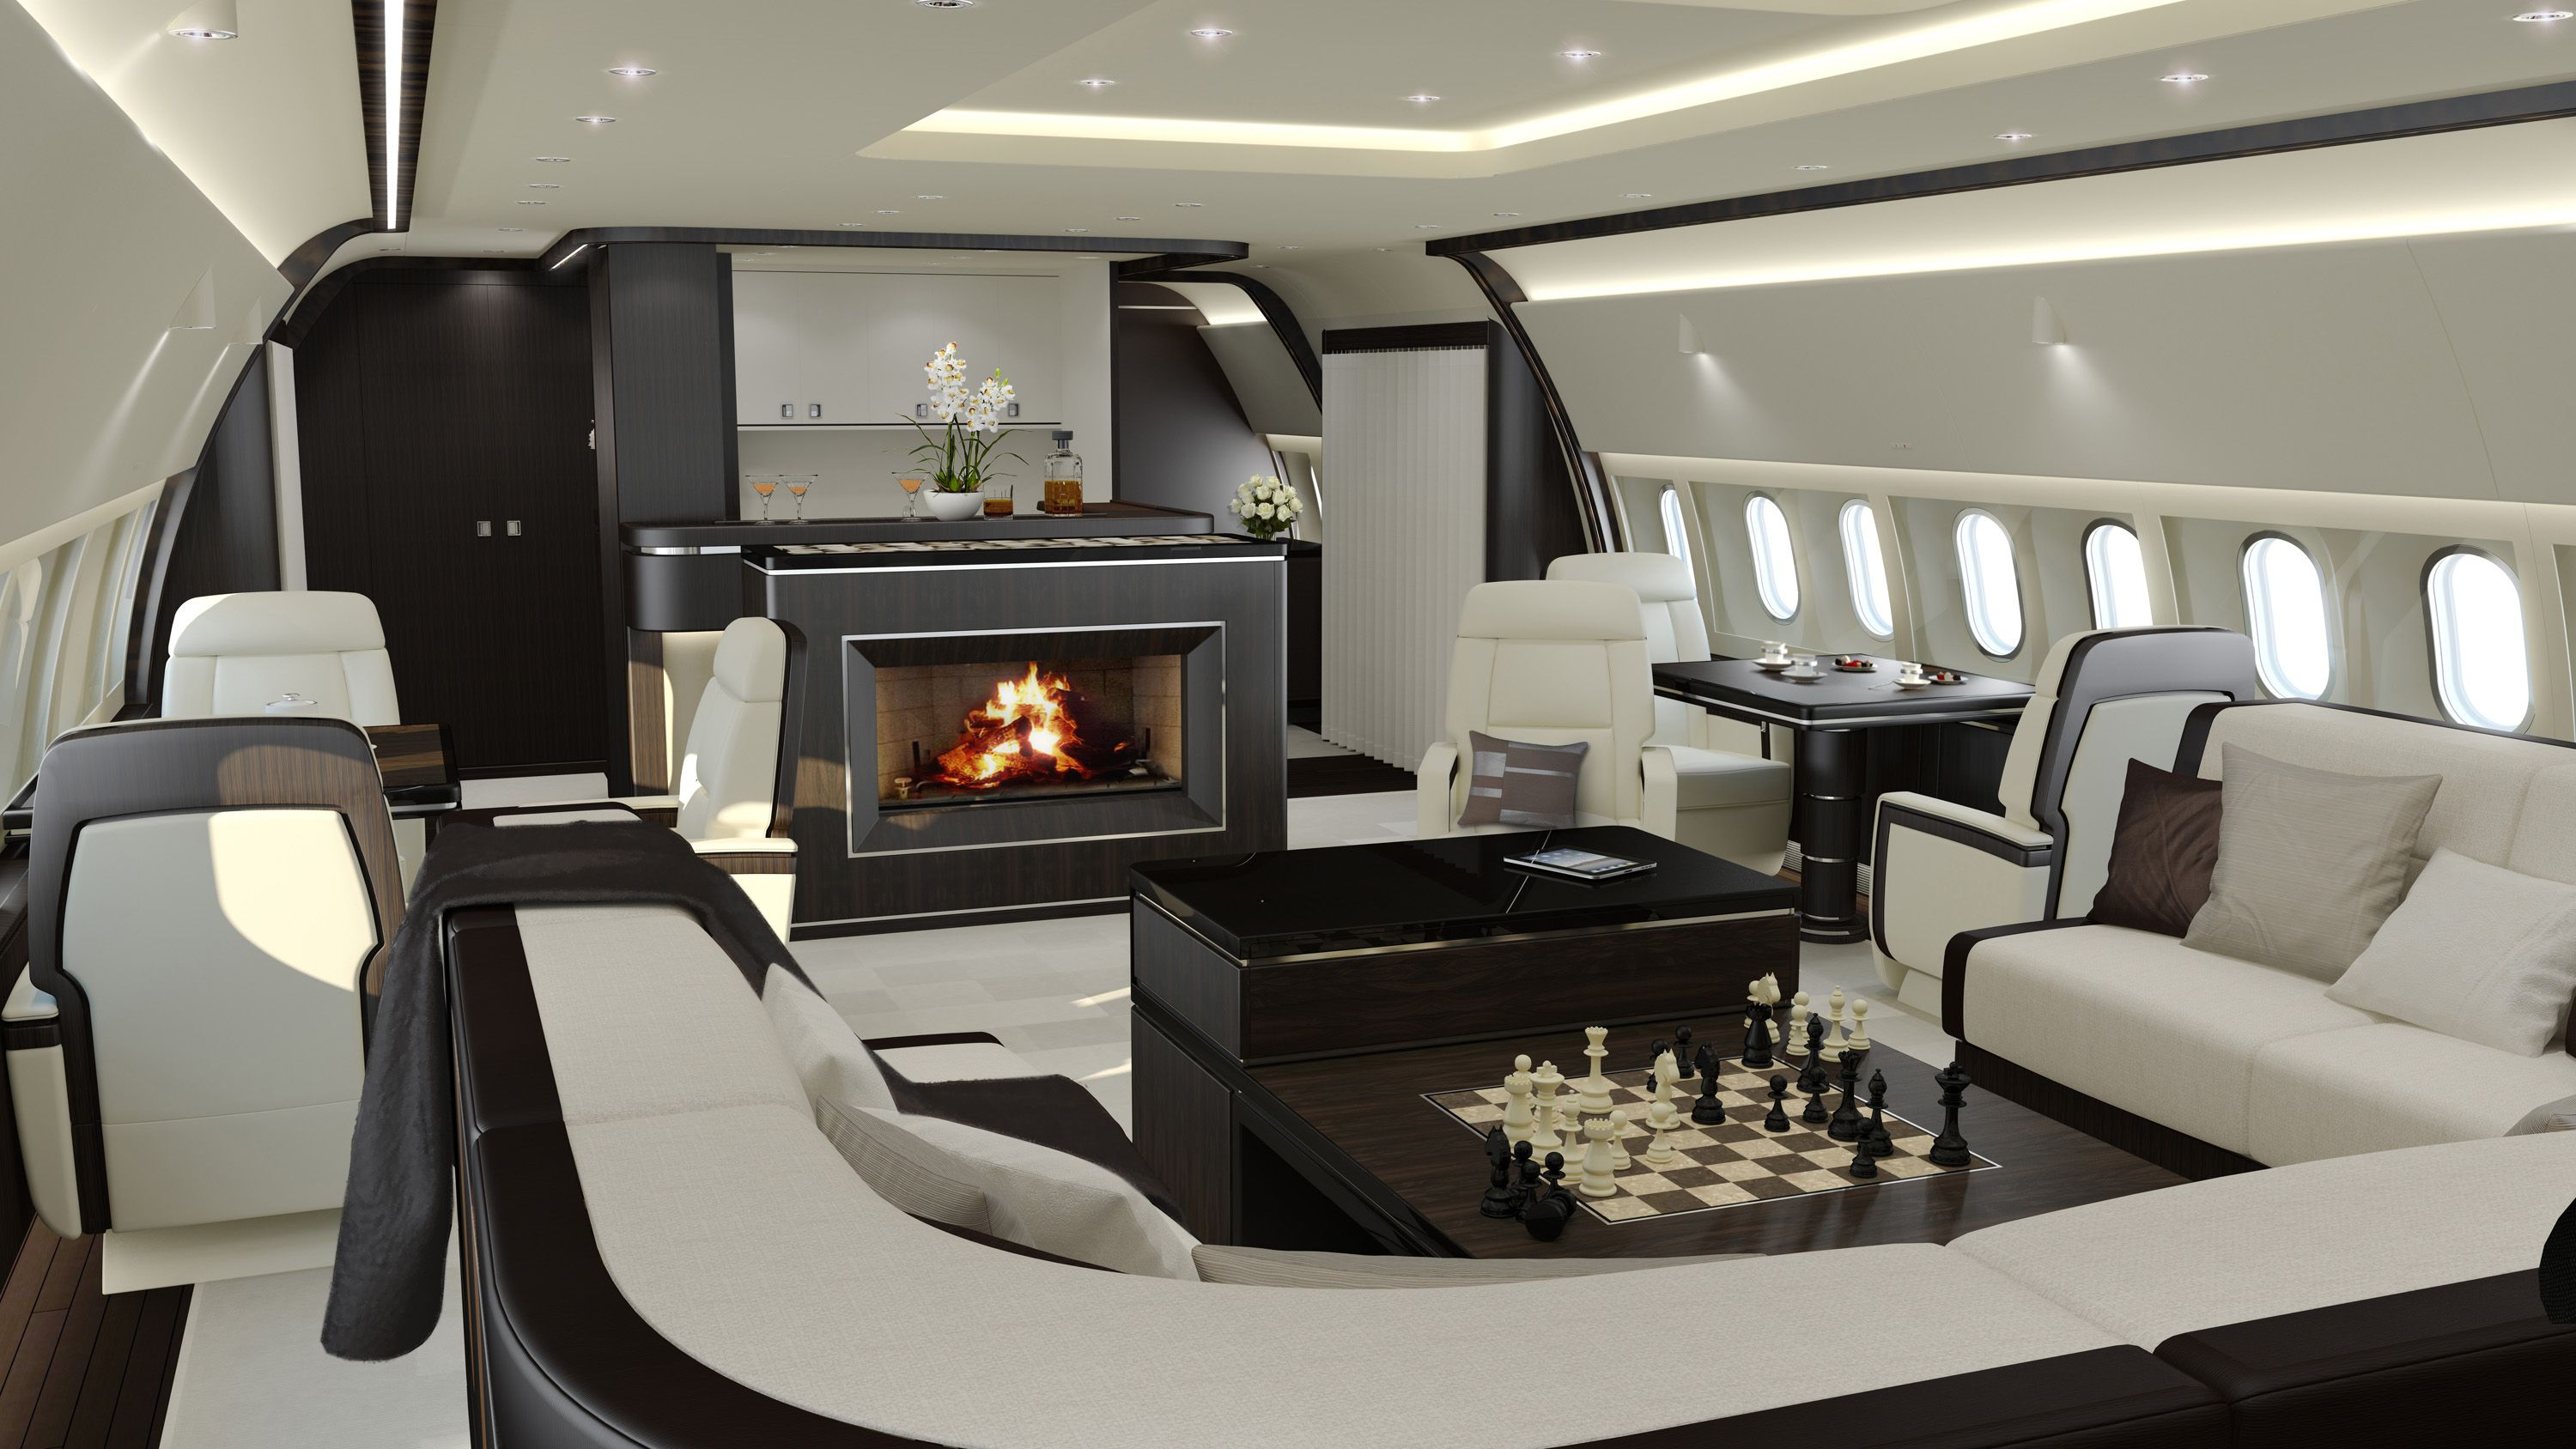 The Jet Aviation Basel Design Studio has created two cabin interior designs  for wide-body